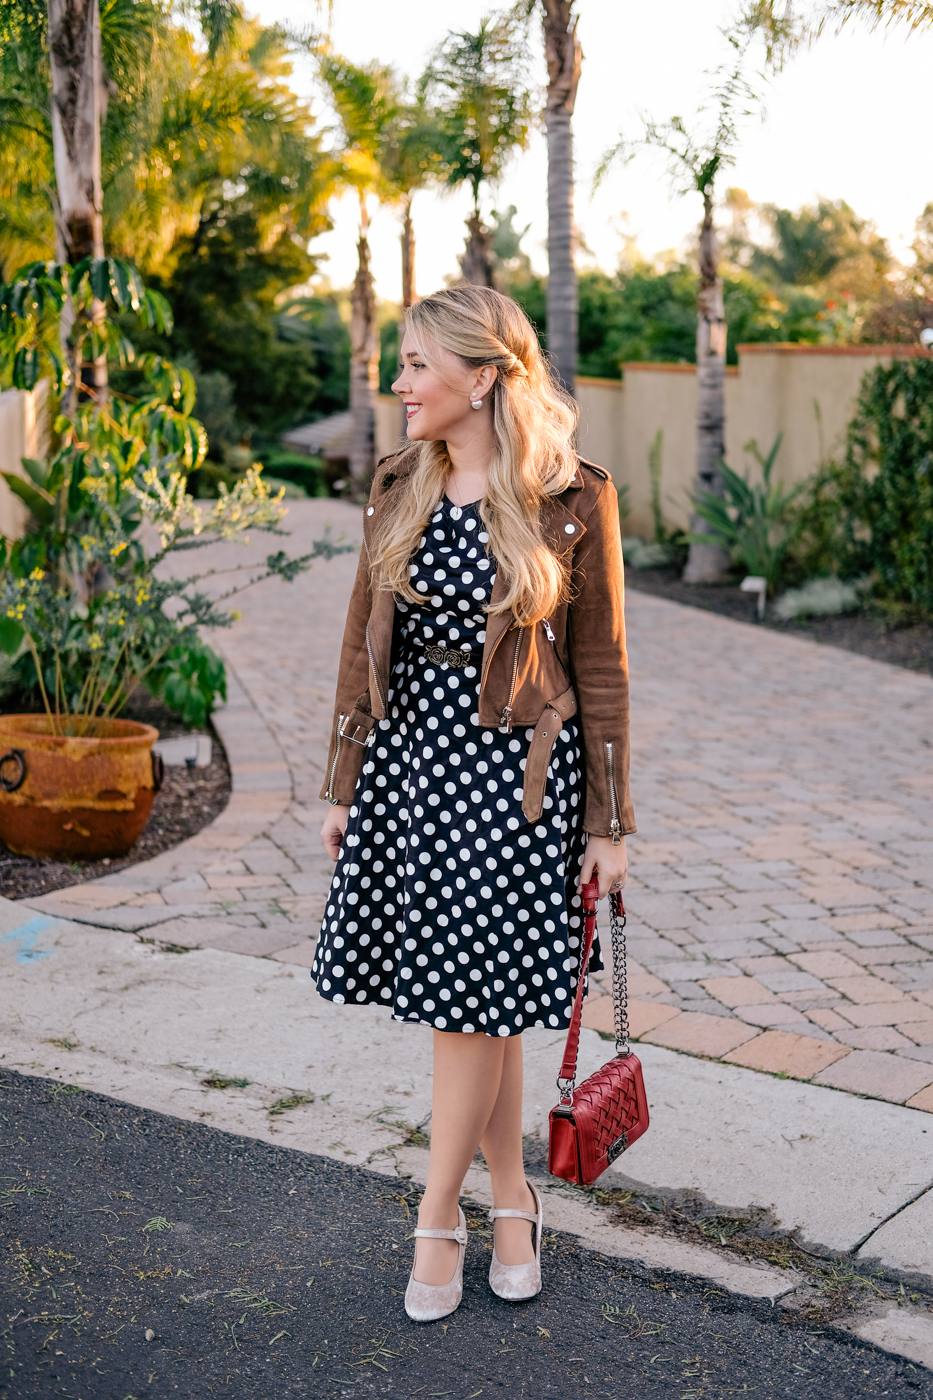 Debora Dahl polka dot dress and brown suede jacket